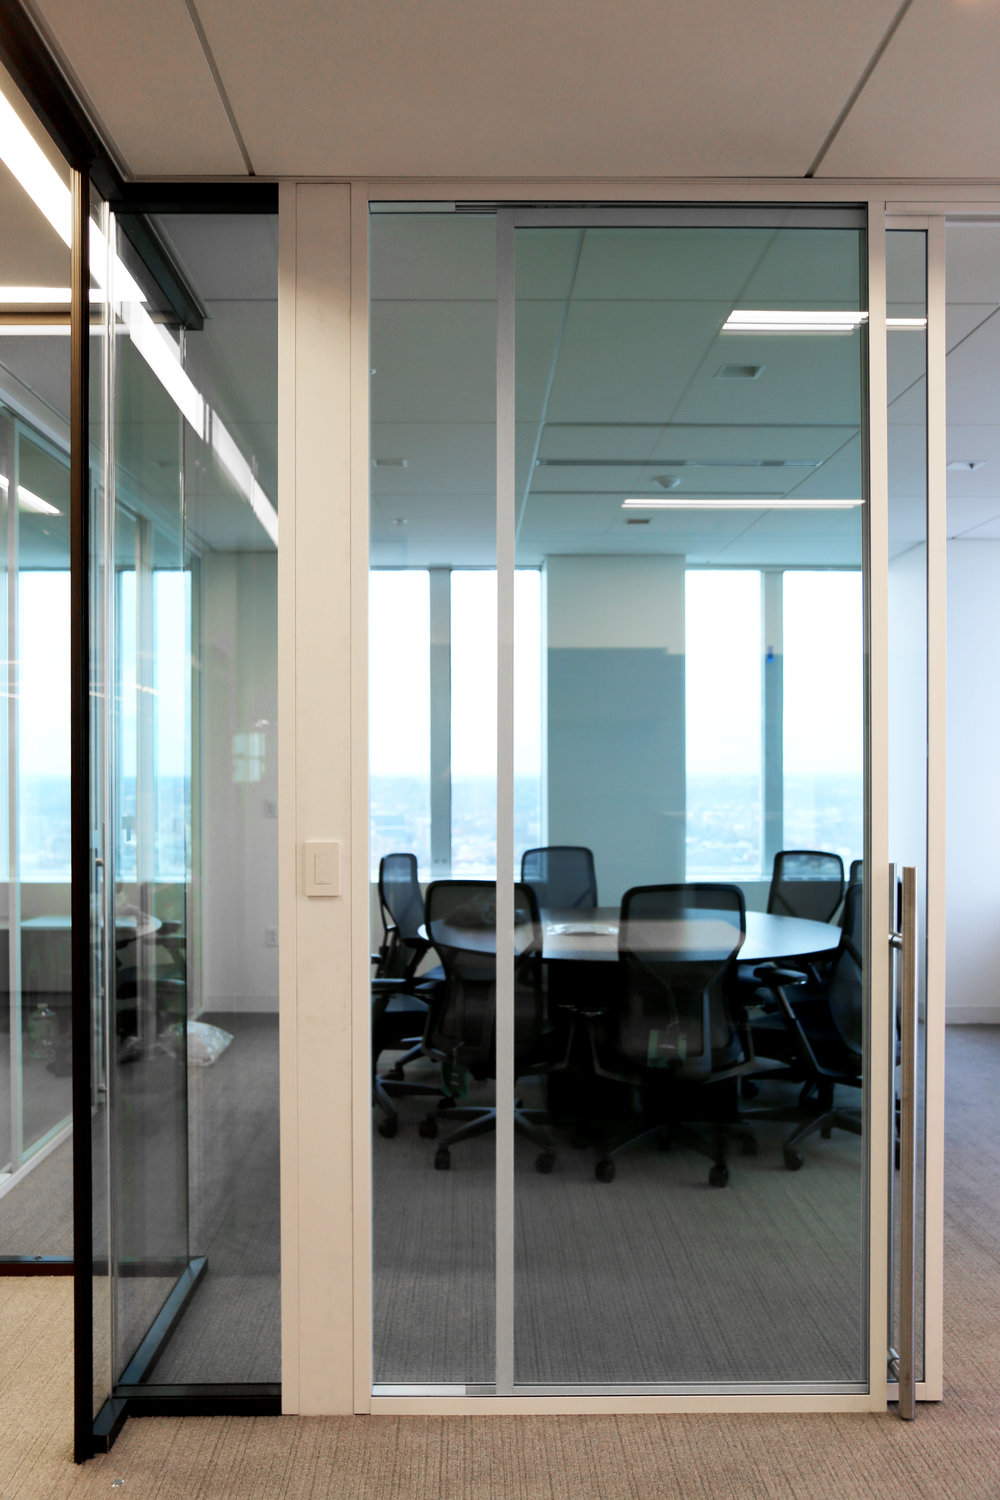 Modernus Aluminum Framed White Powder Coat Glass Walls - Spaceworks AI.jpg